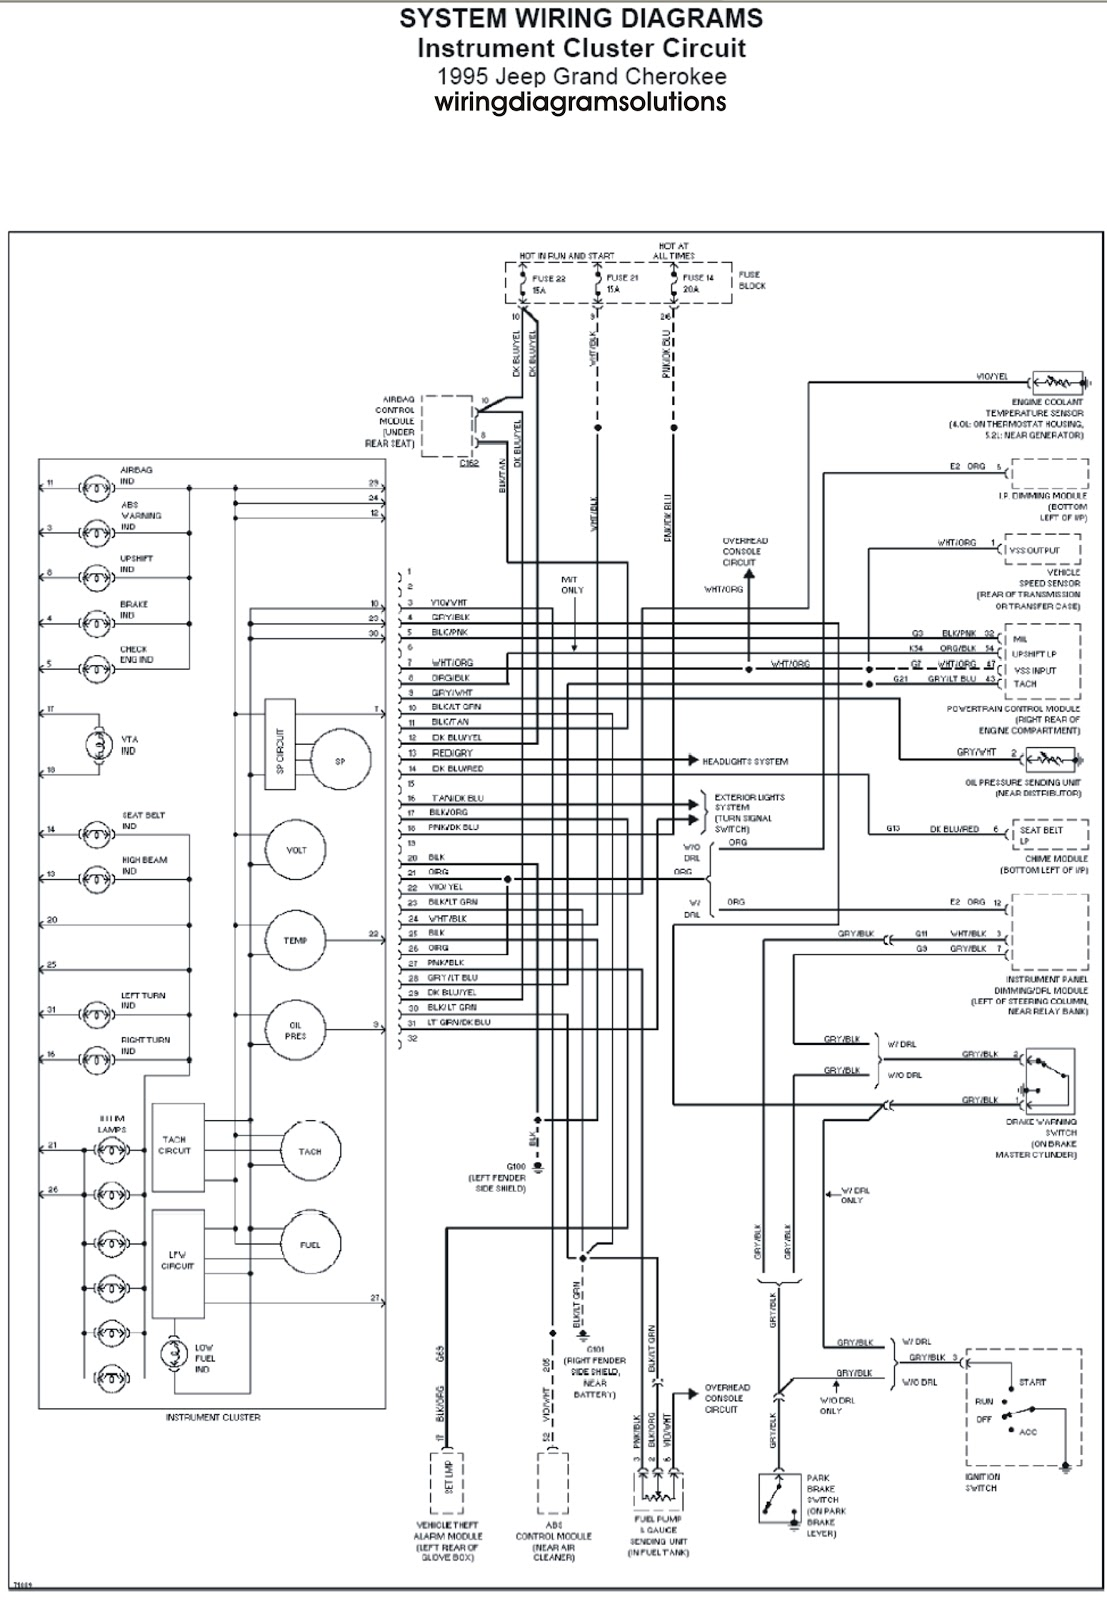 jeep grand cherokee wiring harness diagram wiring diagram sample jeep  wrangler schematics 2004 jeep grand cherokee